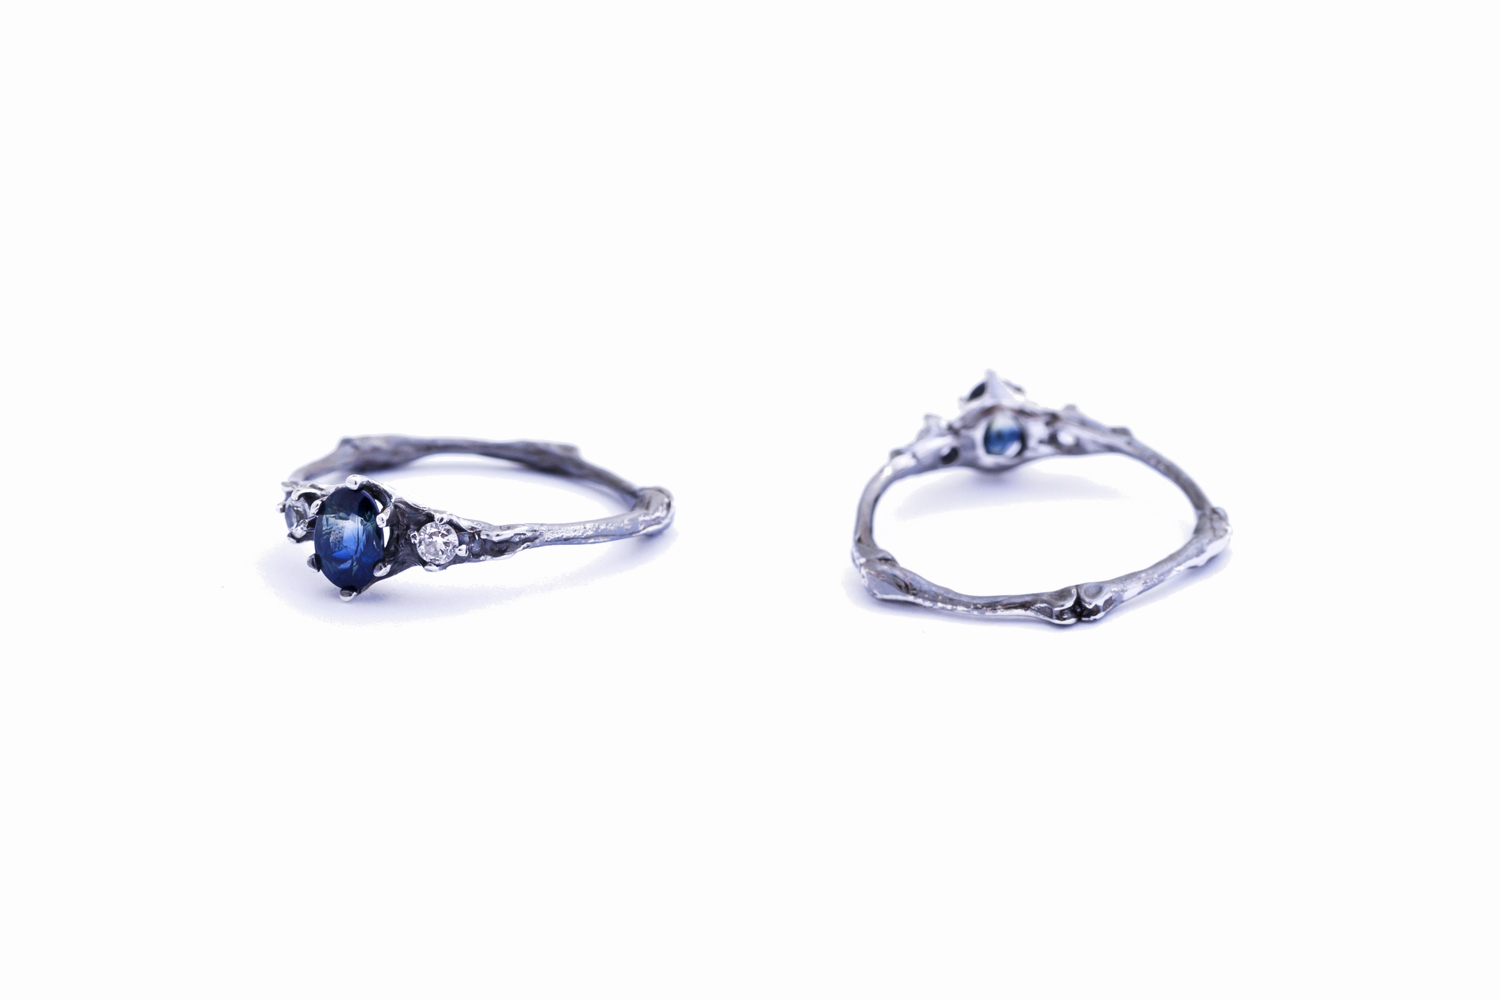 Towers ring // Sterling Silver, Parti Sapphire and Diamonds (2015)